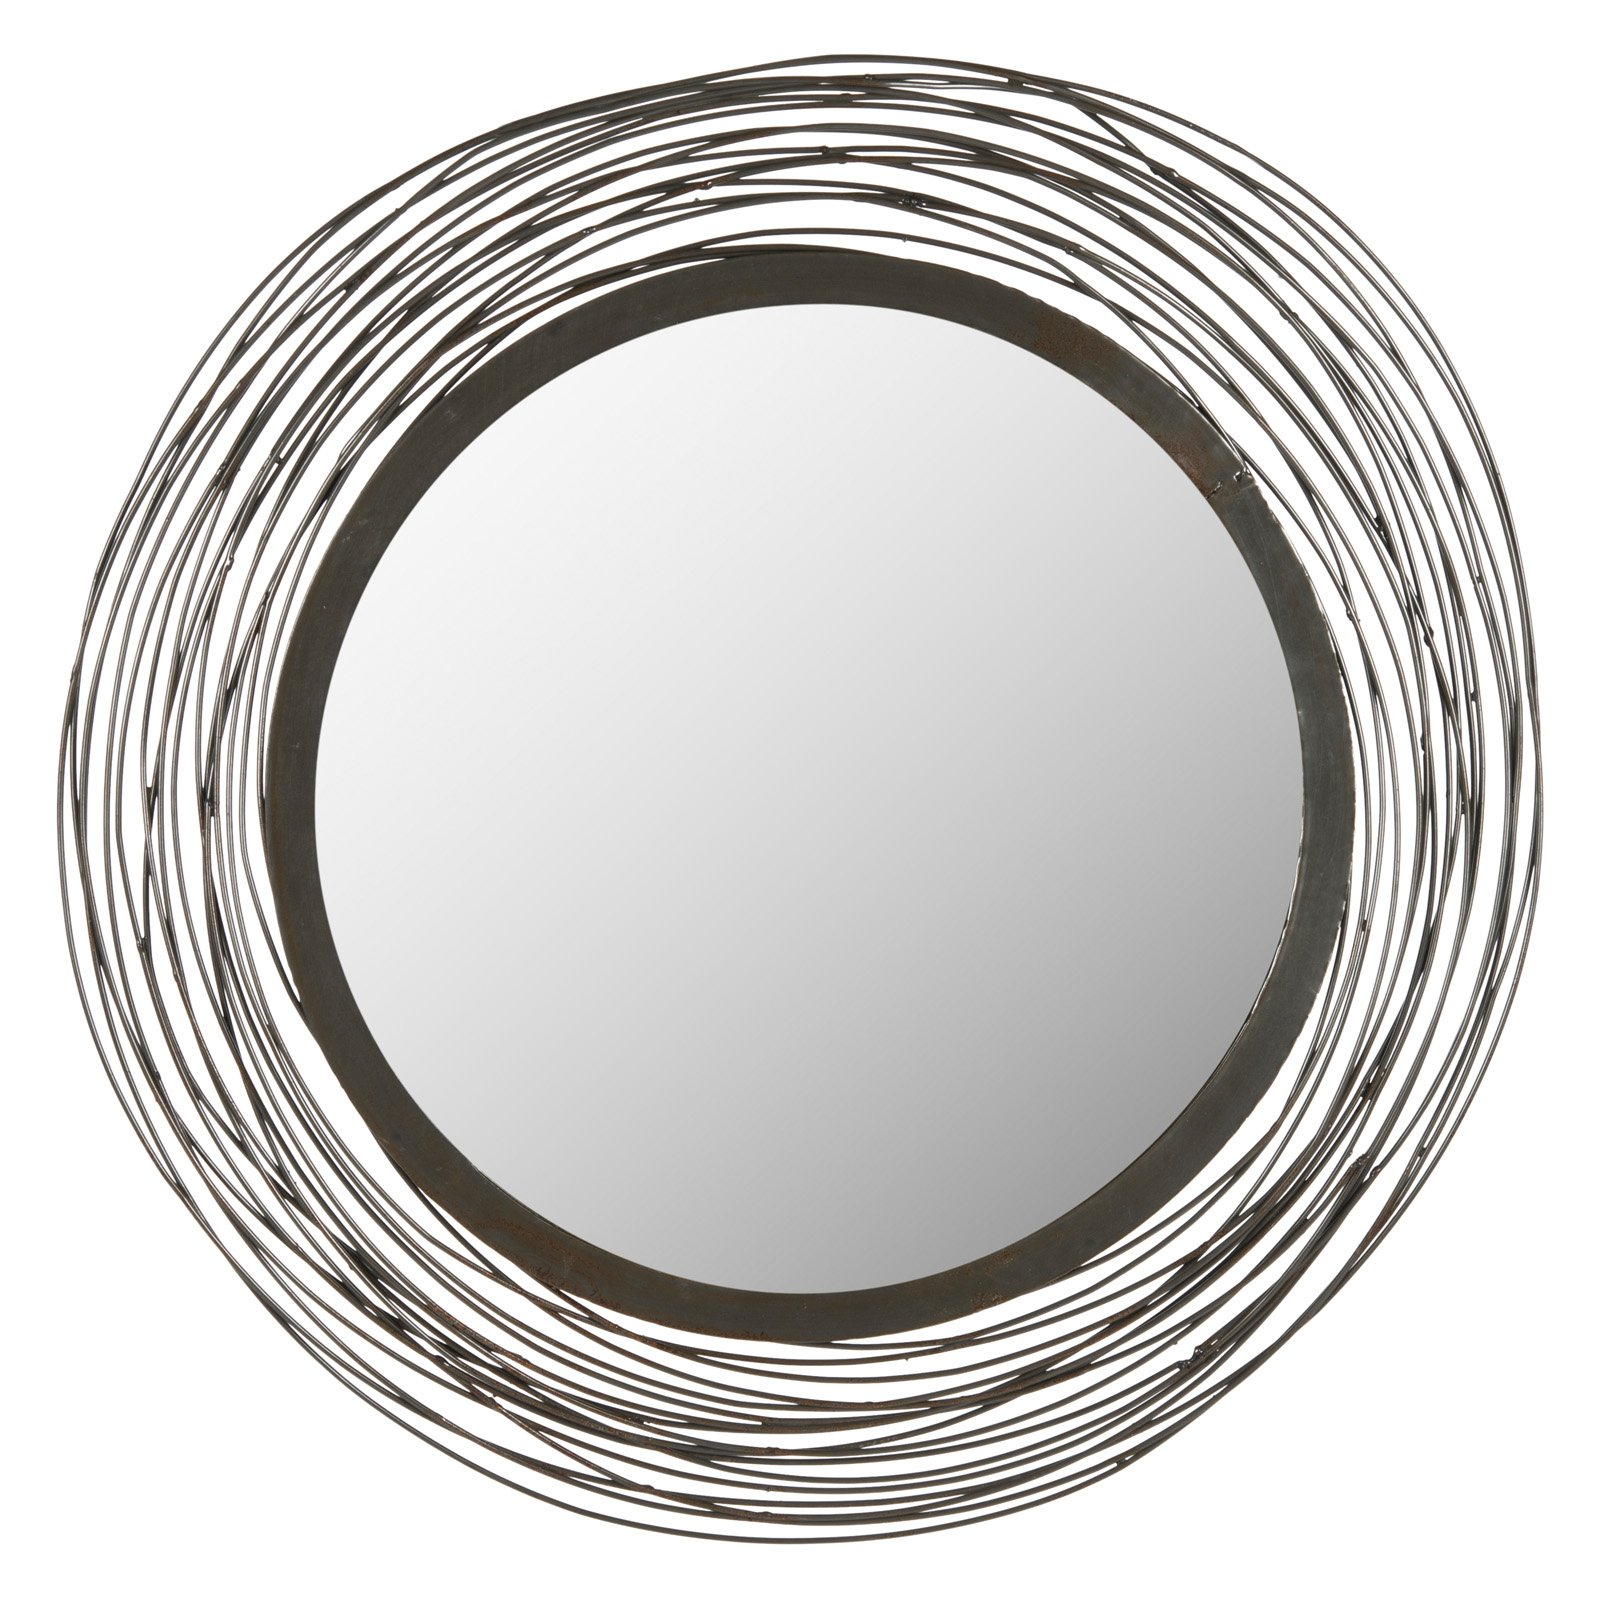 Safavieh Wired Wall Mirror, Natural